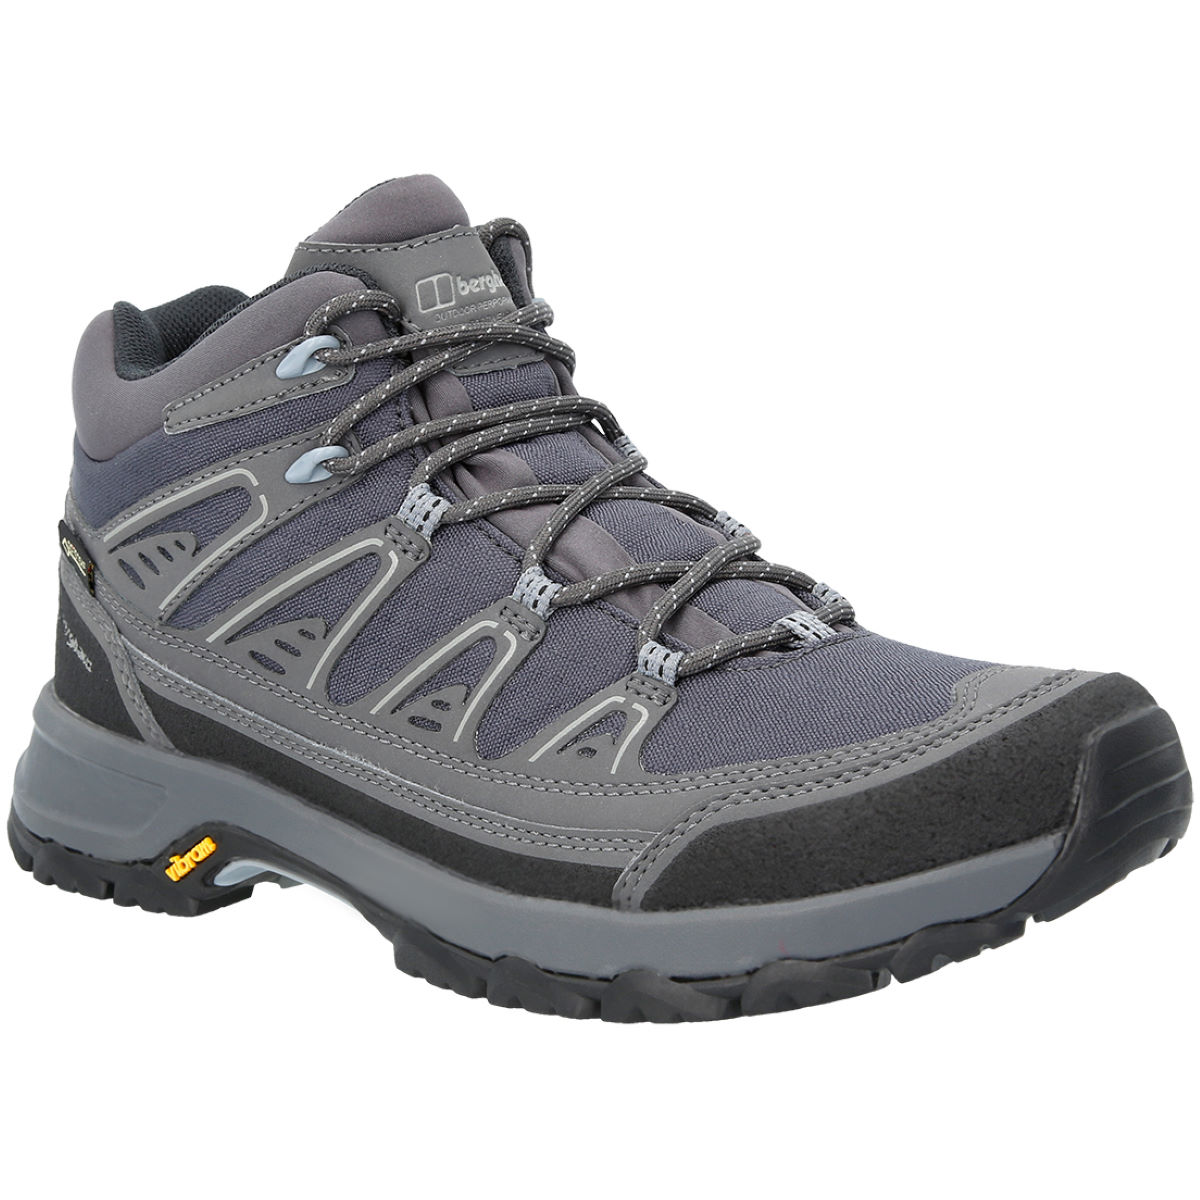 Berghaus Women's Explorer Active Mid GTX Shoes - Botas y botines